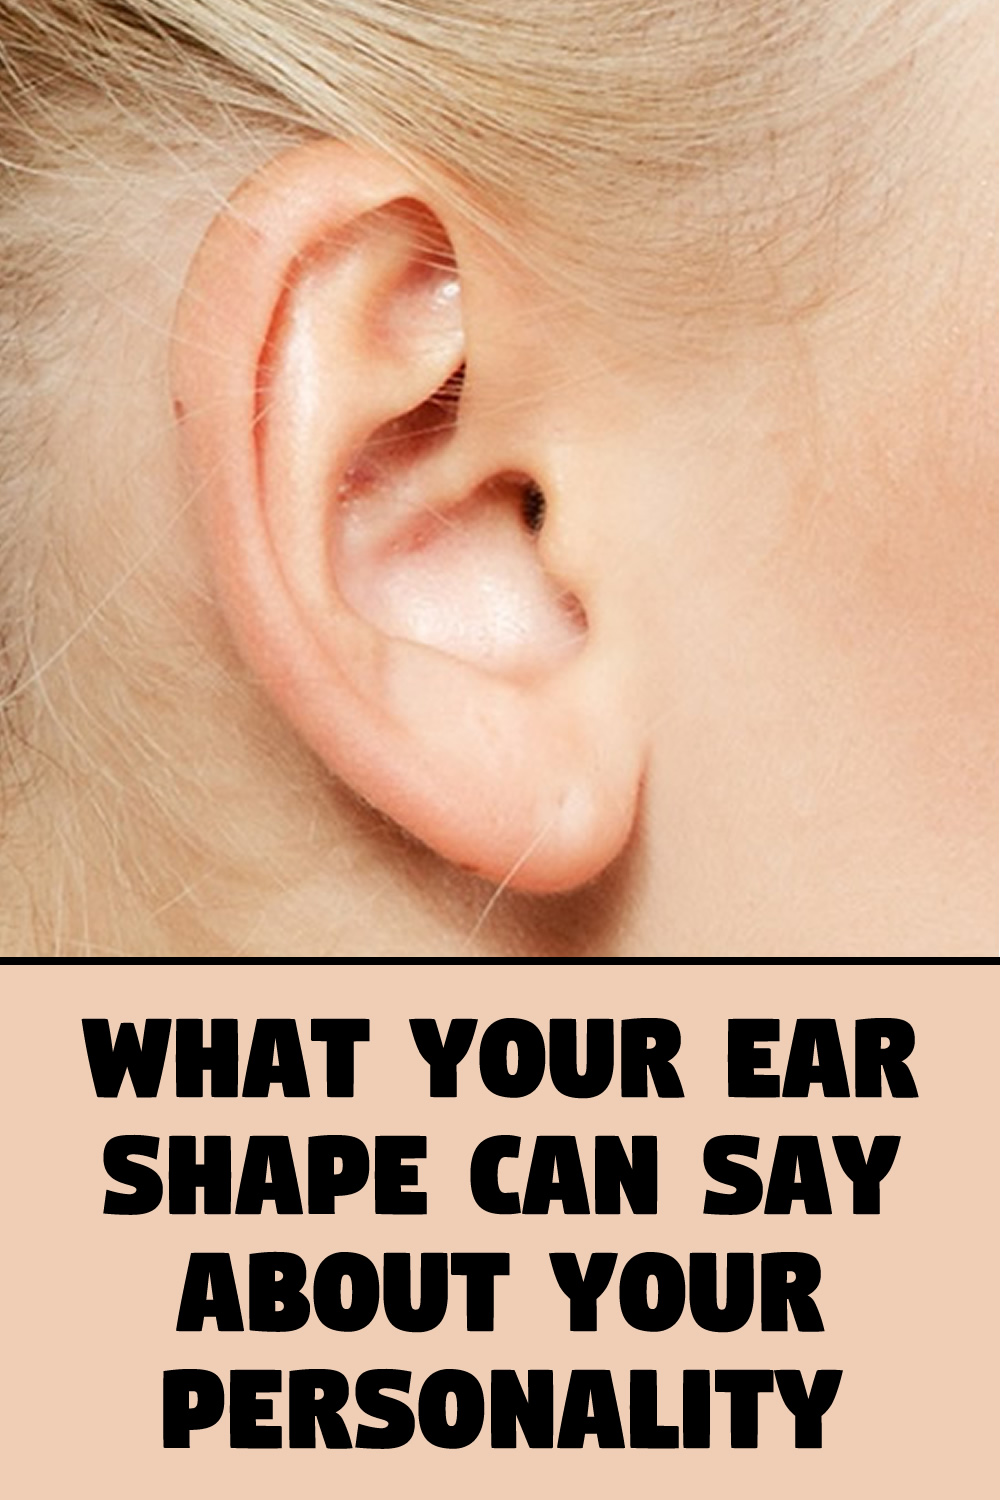 What Your Ear Shape can say about Your Personality